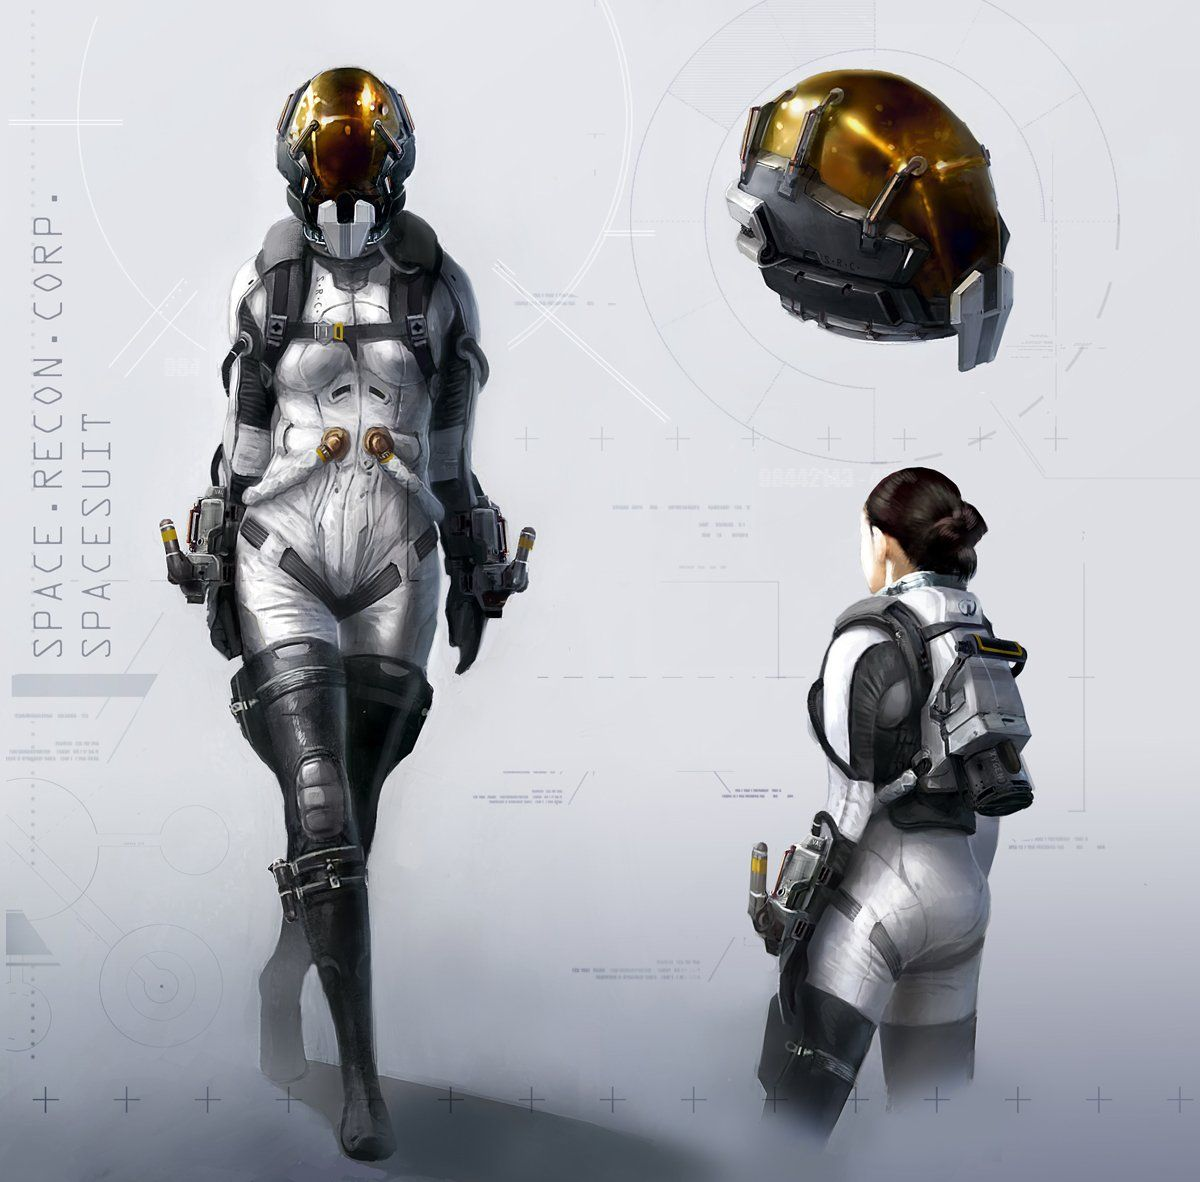 Sci-Fi Space Suit Back - Pics about space